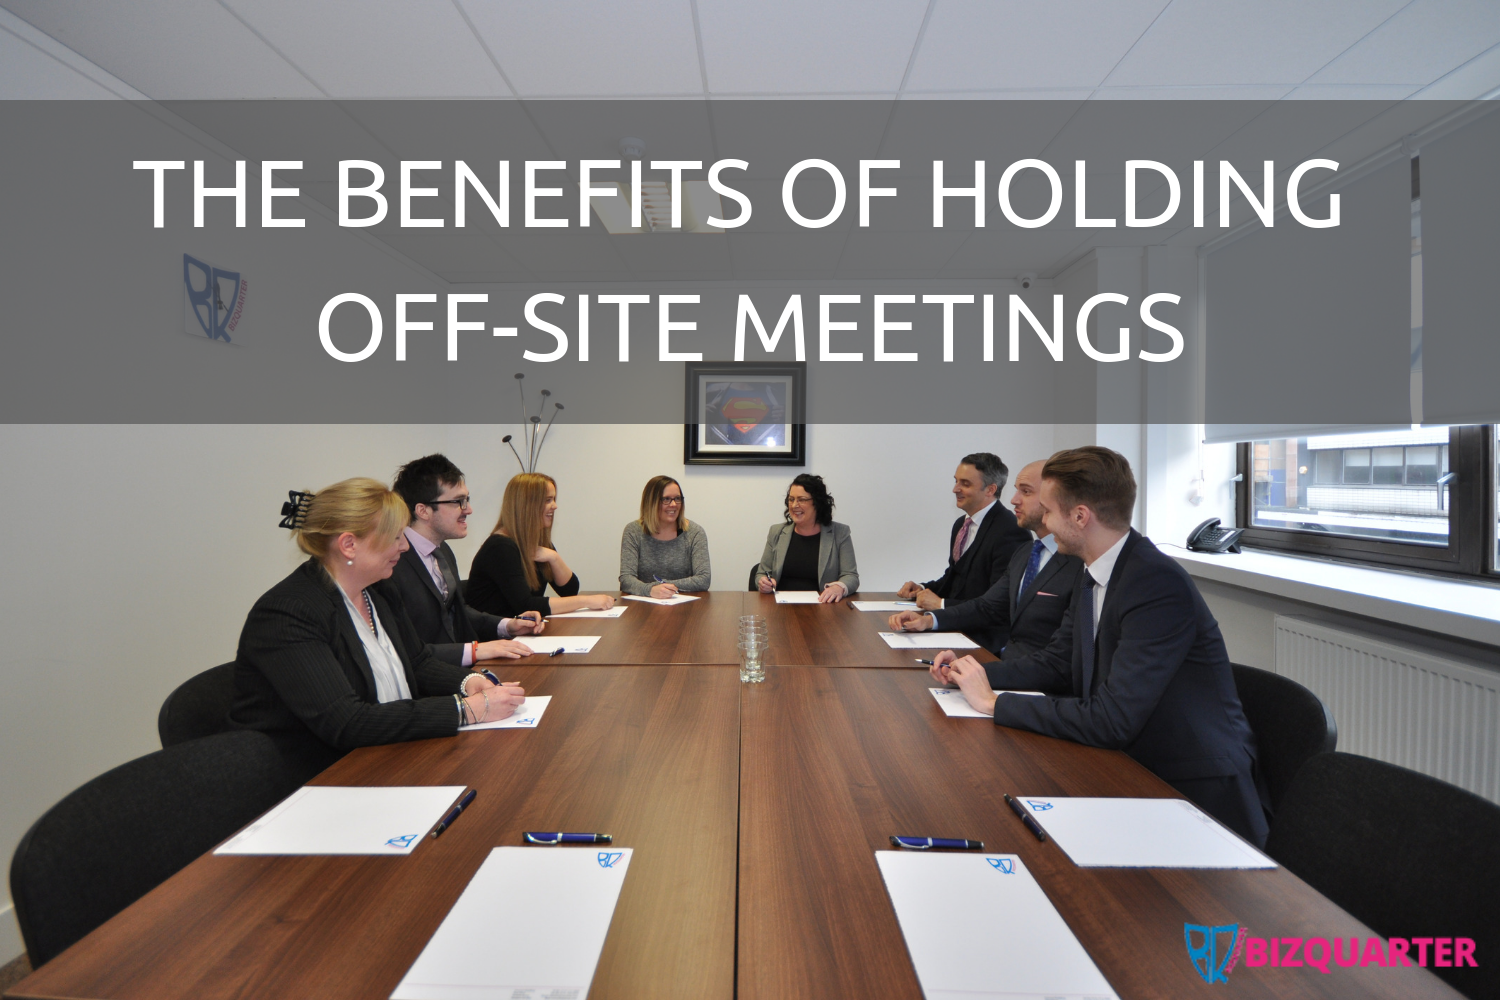 The benefits of holding off-site meetings